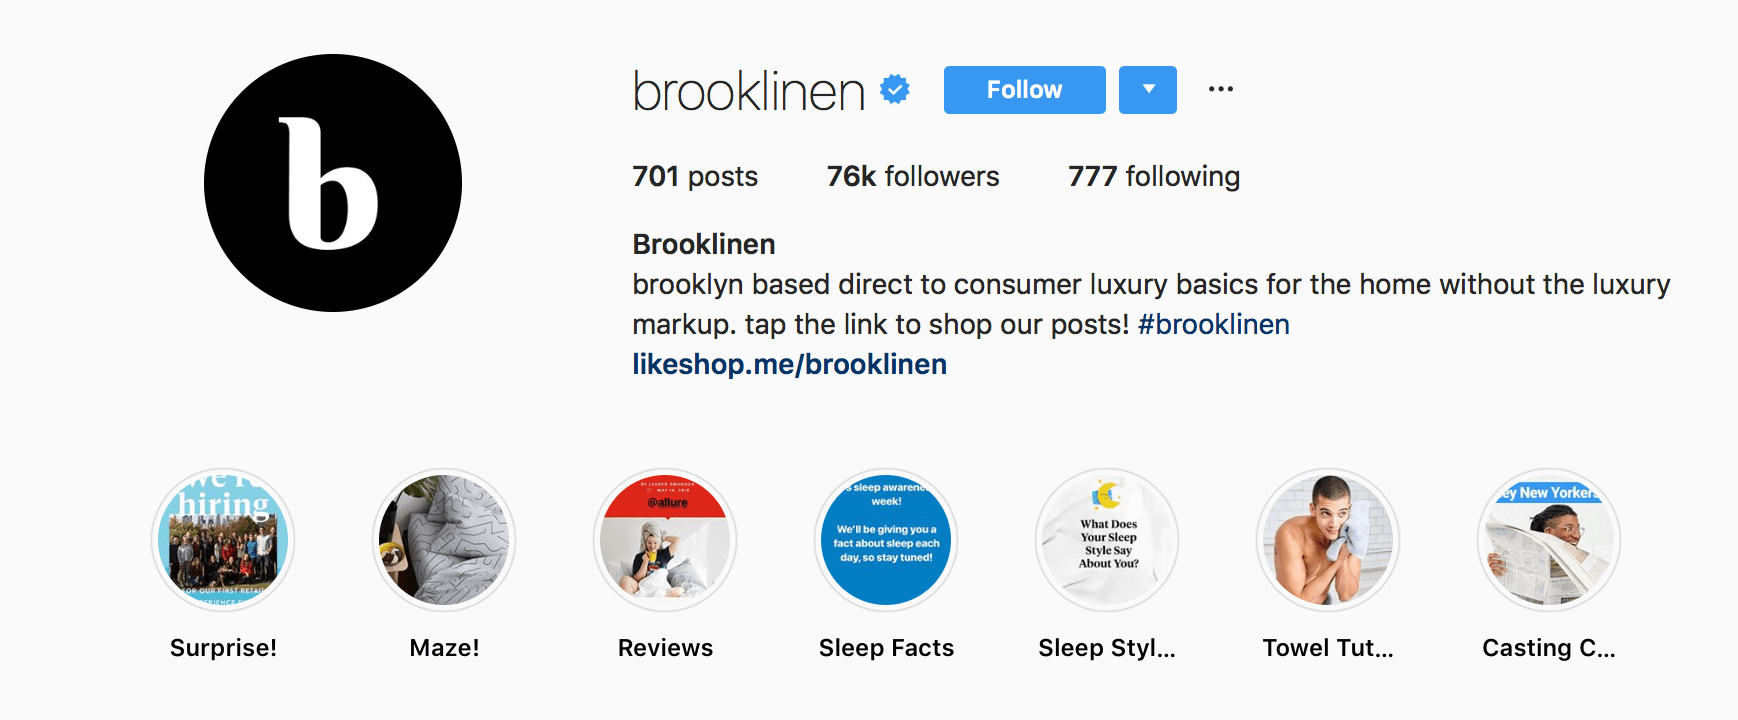 Instagram Bio Ideas 20 Examples to Inspire You to Craft the ...